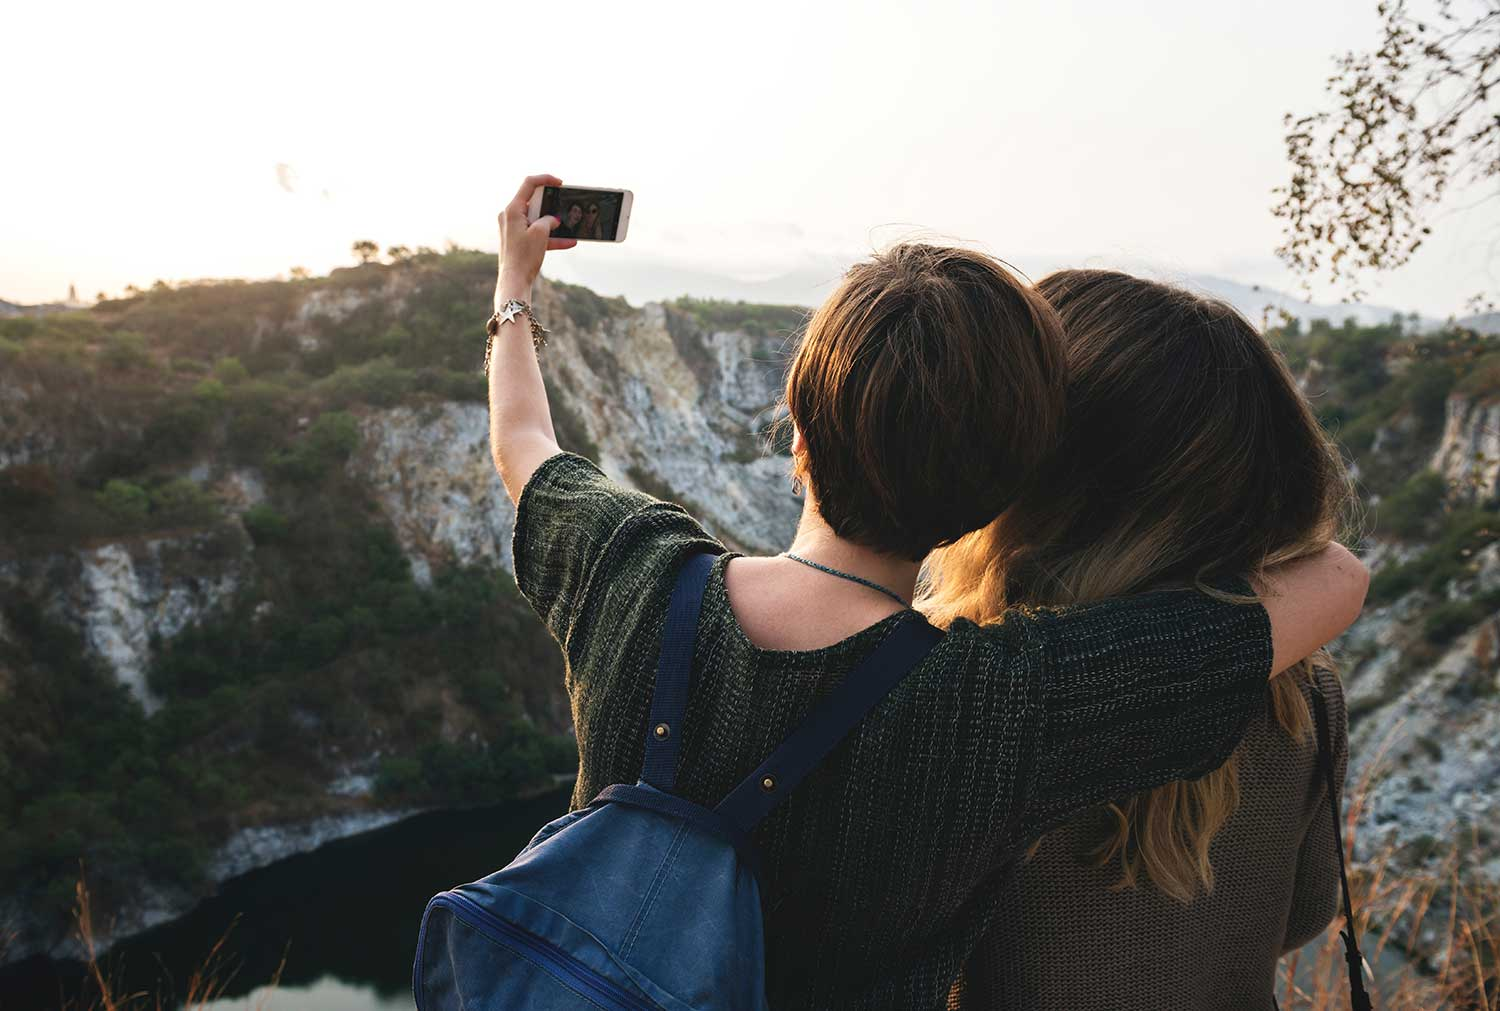 More than 250 people have died while trying to take selfies, study finds  CNBC - October 04, 2018